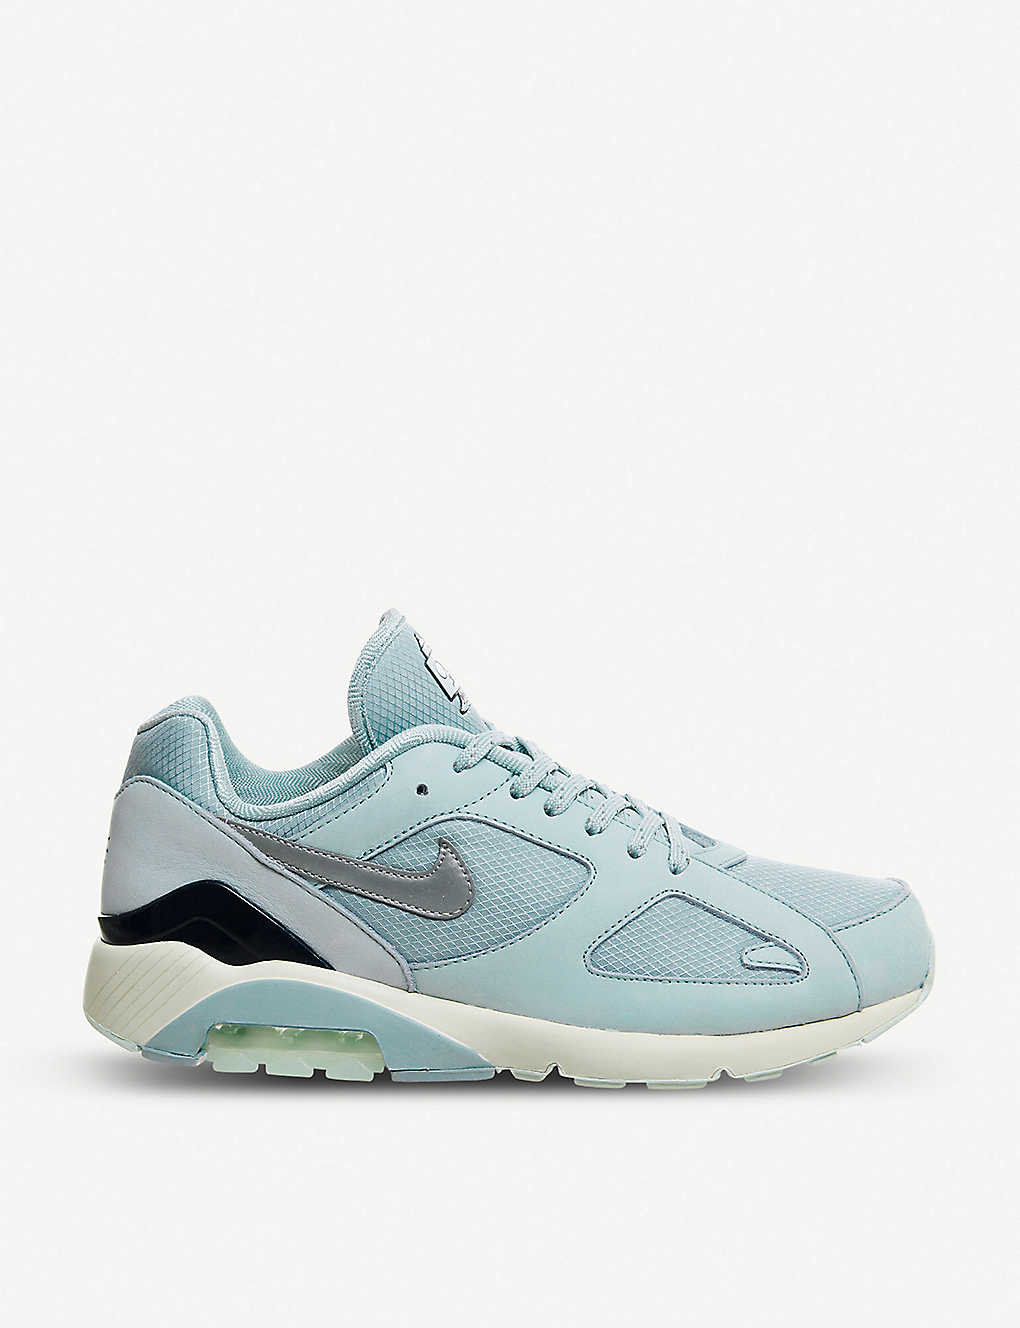 9399219a6 NIKE - Air Max 180 Fire mesh and leather trainers